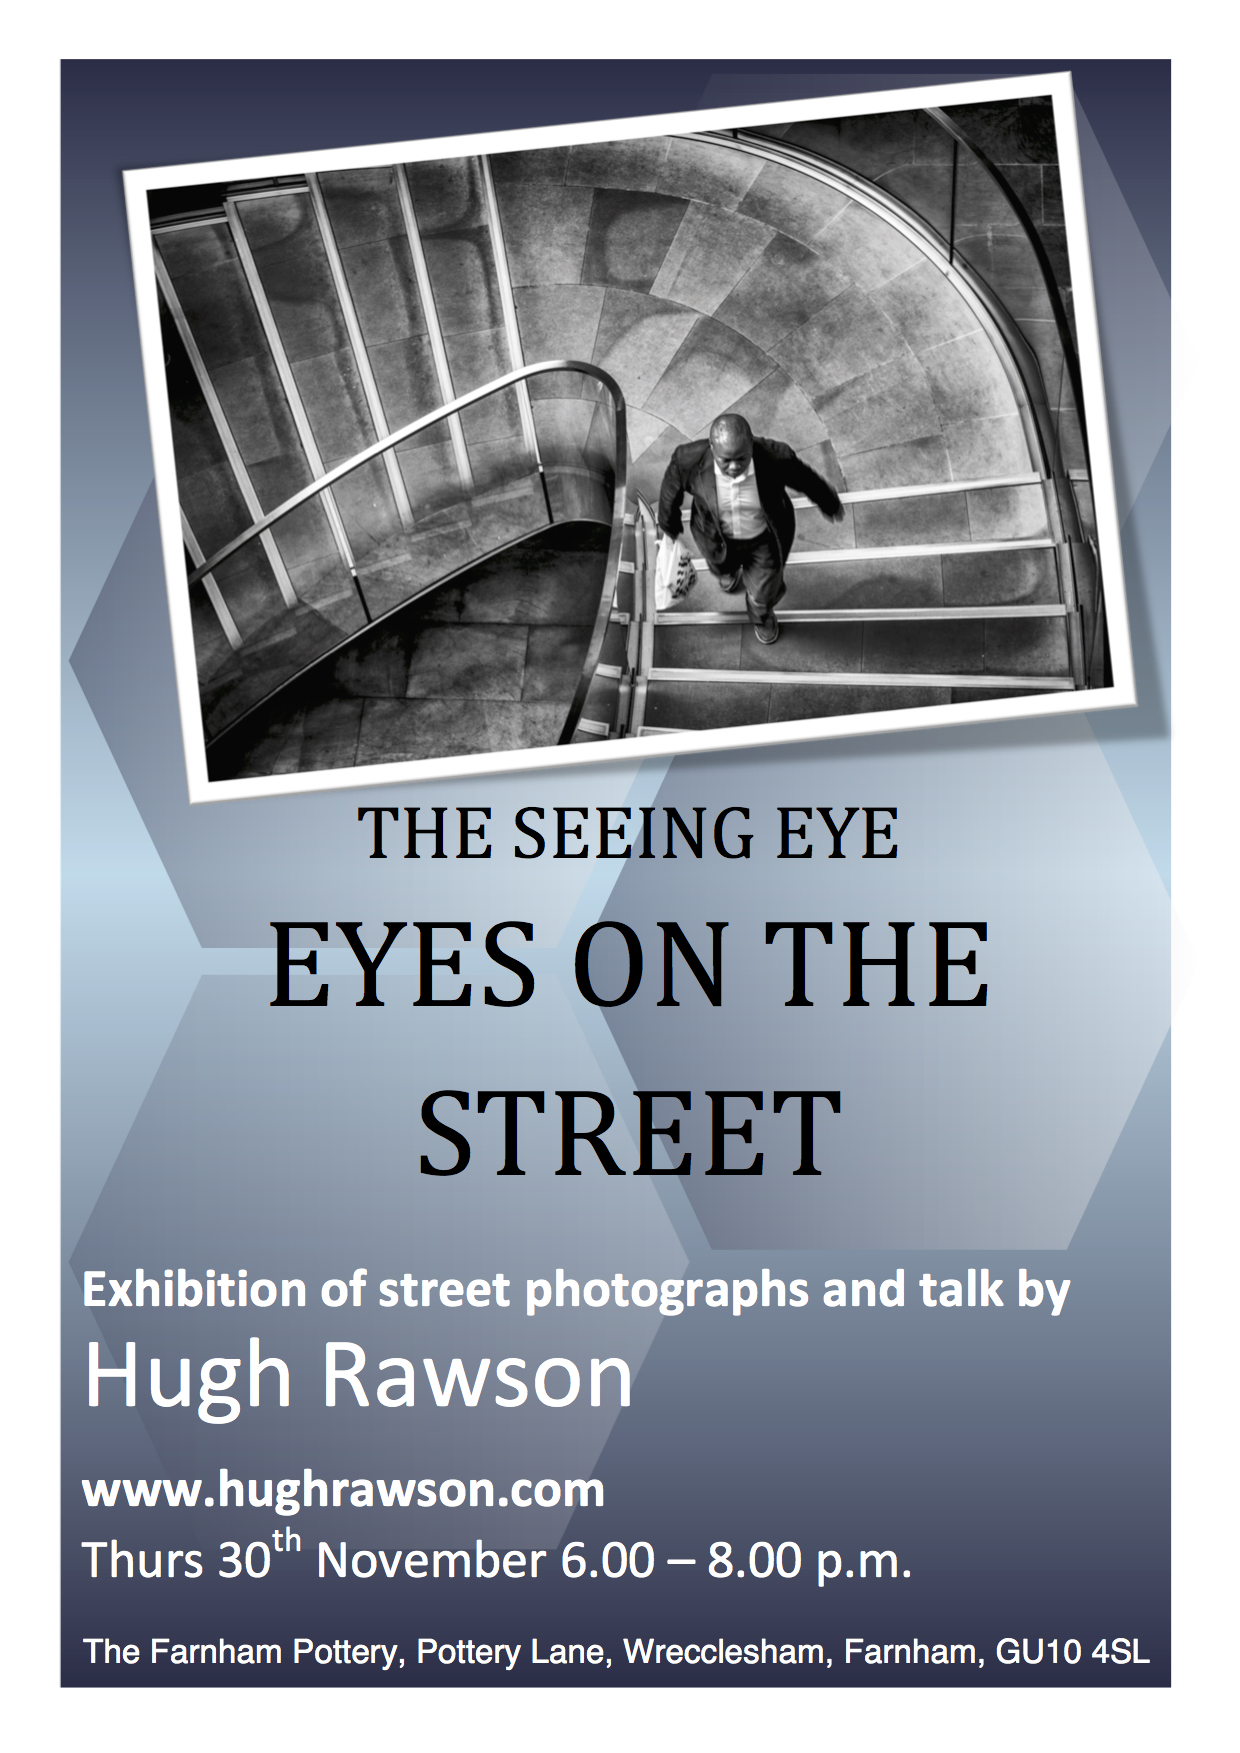 The Seeing Eye - Hugh Rawson flyer.jpg